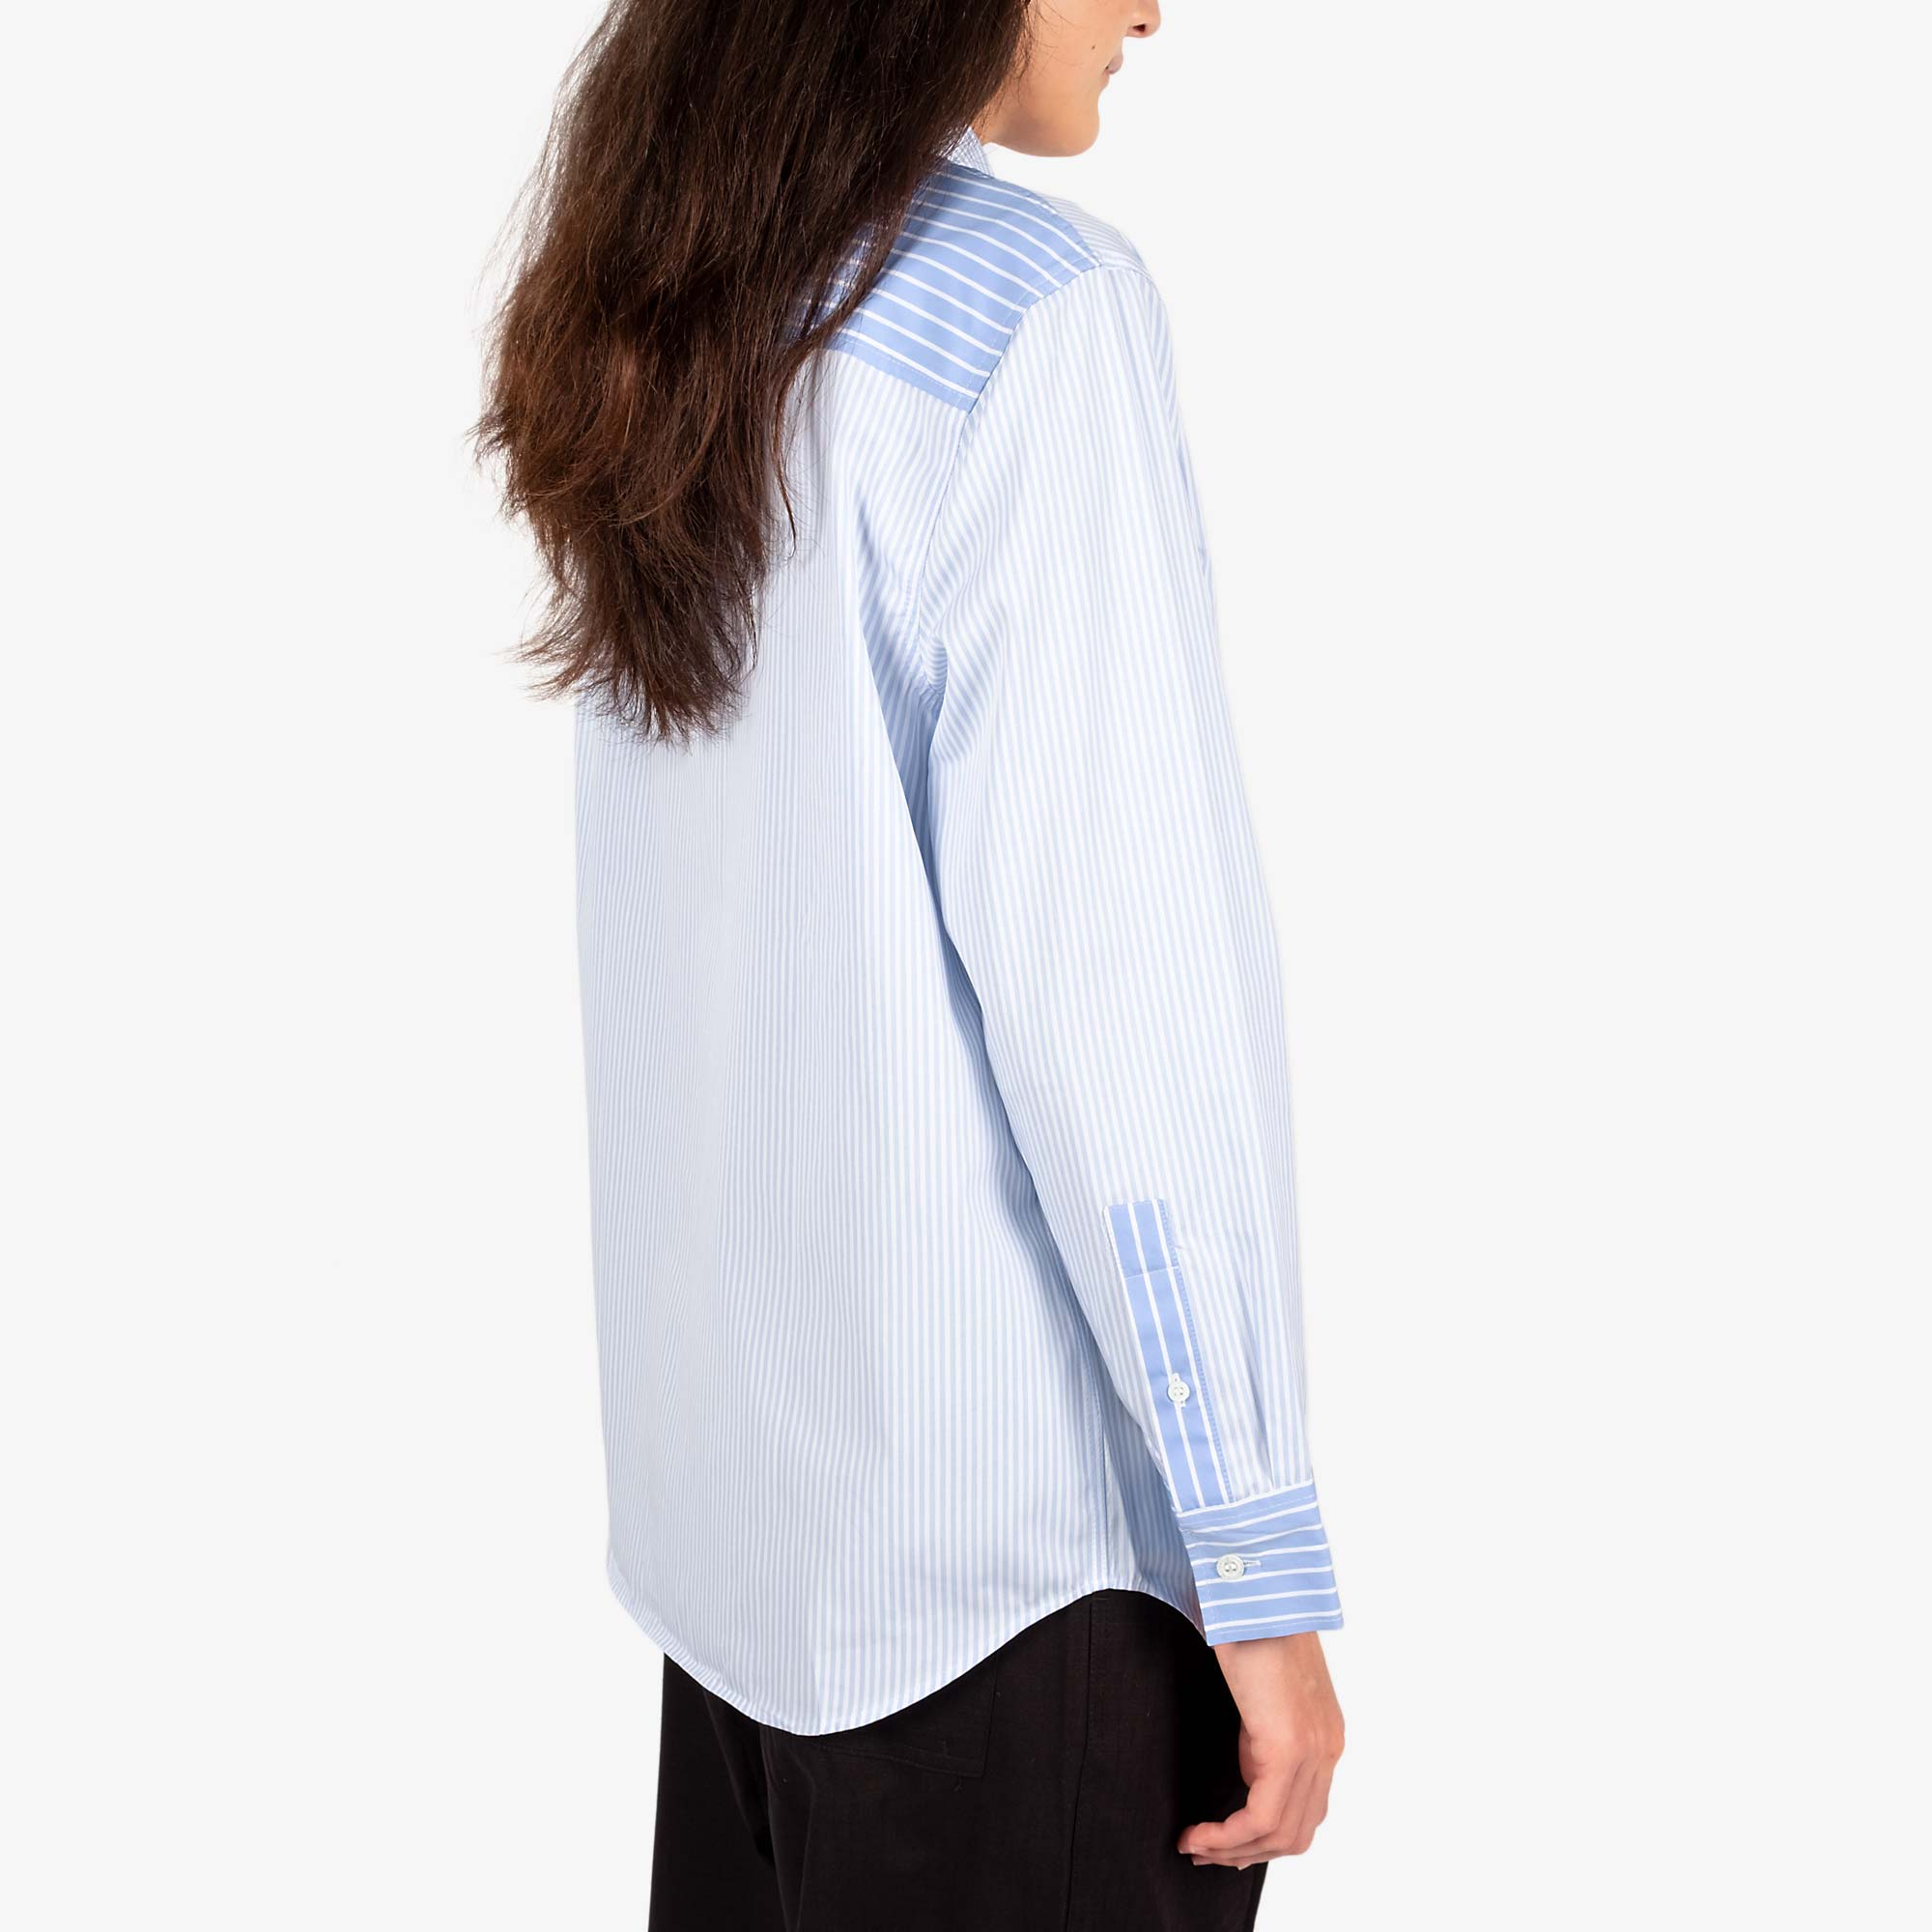 Maison Kitsune Womens Fox Head Classic Shirt - Blue Stripe 4